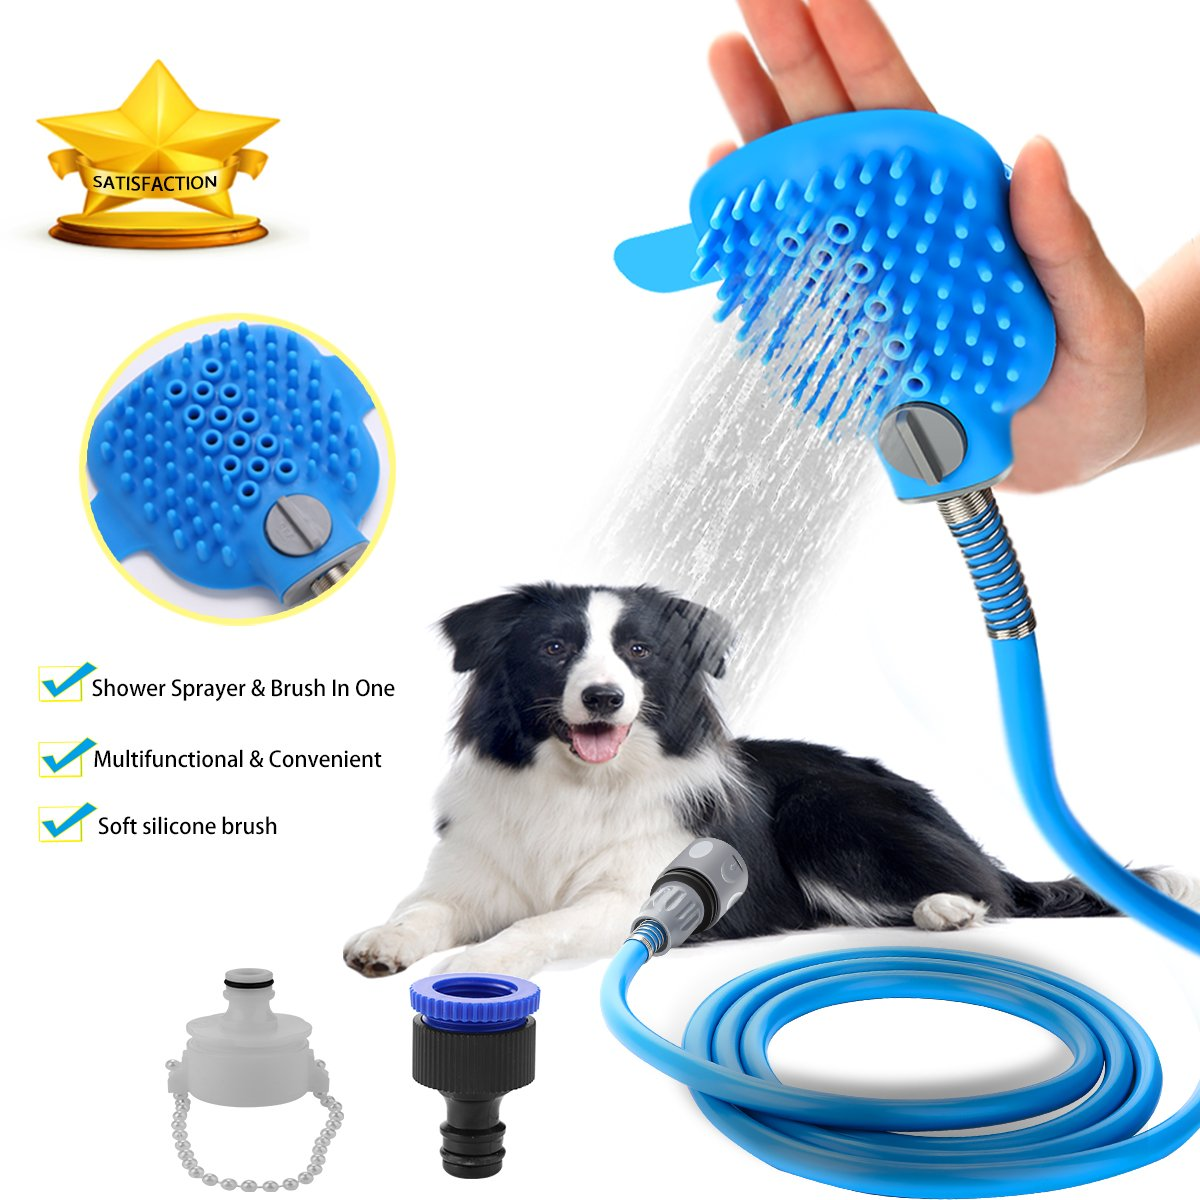 Pet Shower Sprayer Dog Bathing Tool - Shower Head & Brush in One 8.2 Ft Hose 2 Adapters, Dog Cat Horse Grooming & Massage, Dog Wash Bathtub Outdoor Use